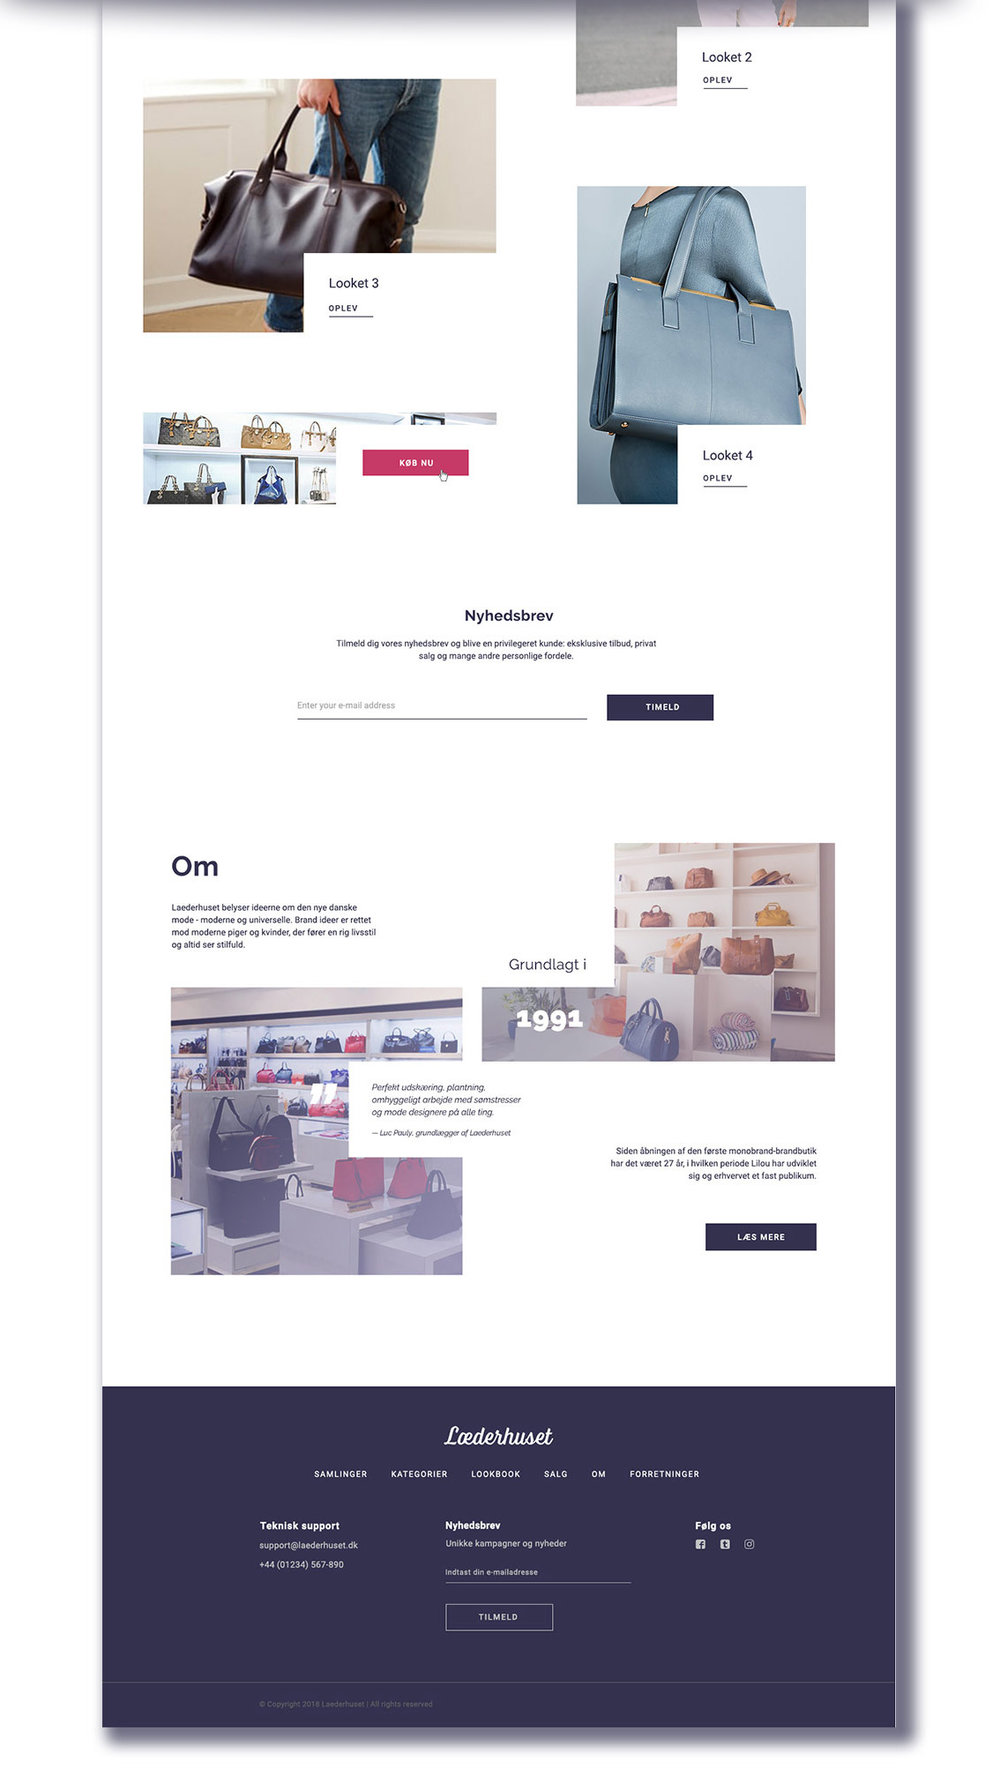 Læderhuset - Web Design Home page (Bottom half) by THAT Branding Company - Creative Design and Branding Agency in Newcastle